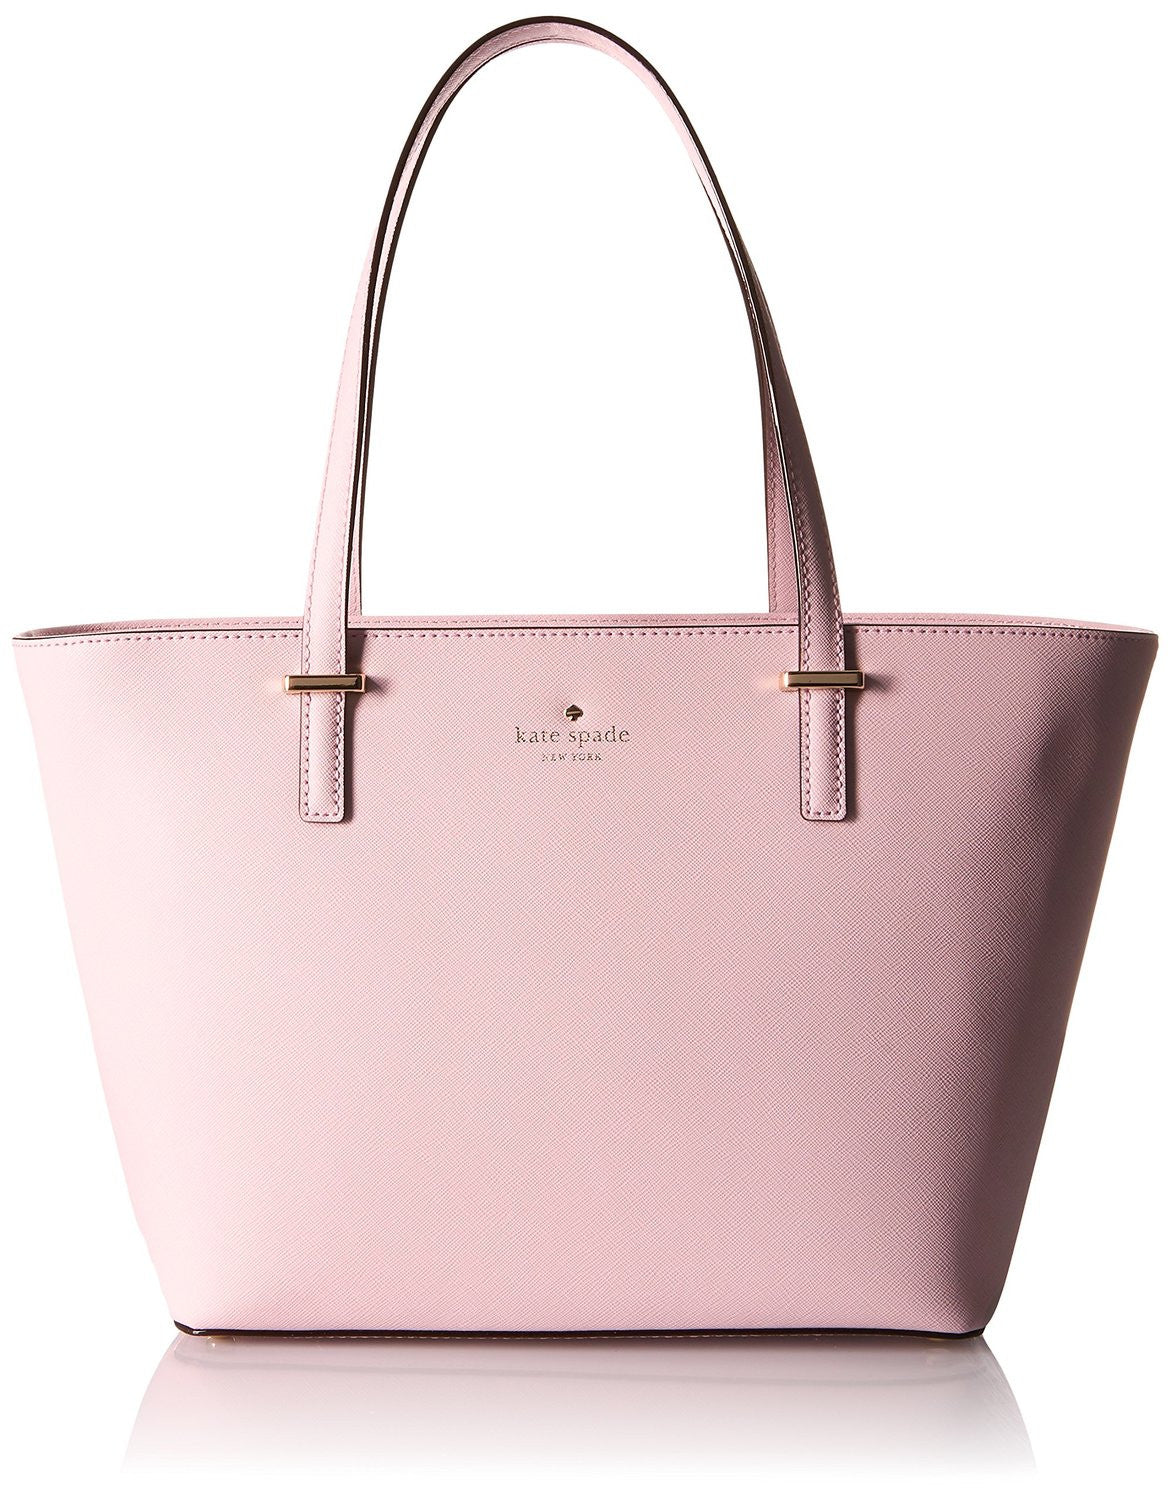 5be7b45e6c kate spade new york Cedar Street Mini Harmony Shoulder Bag - Pink Blus –  Merkato.com.au